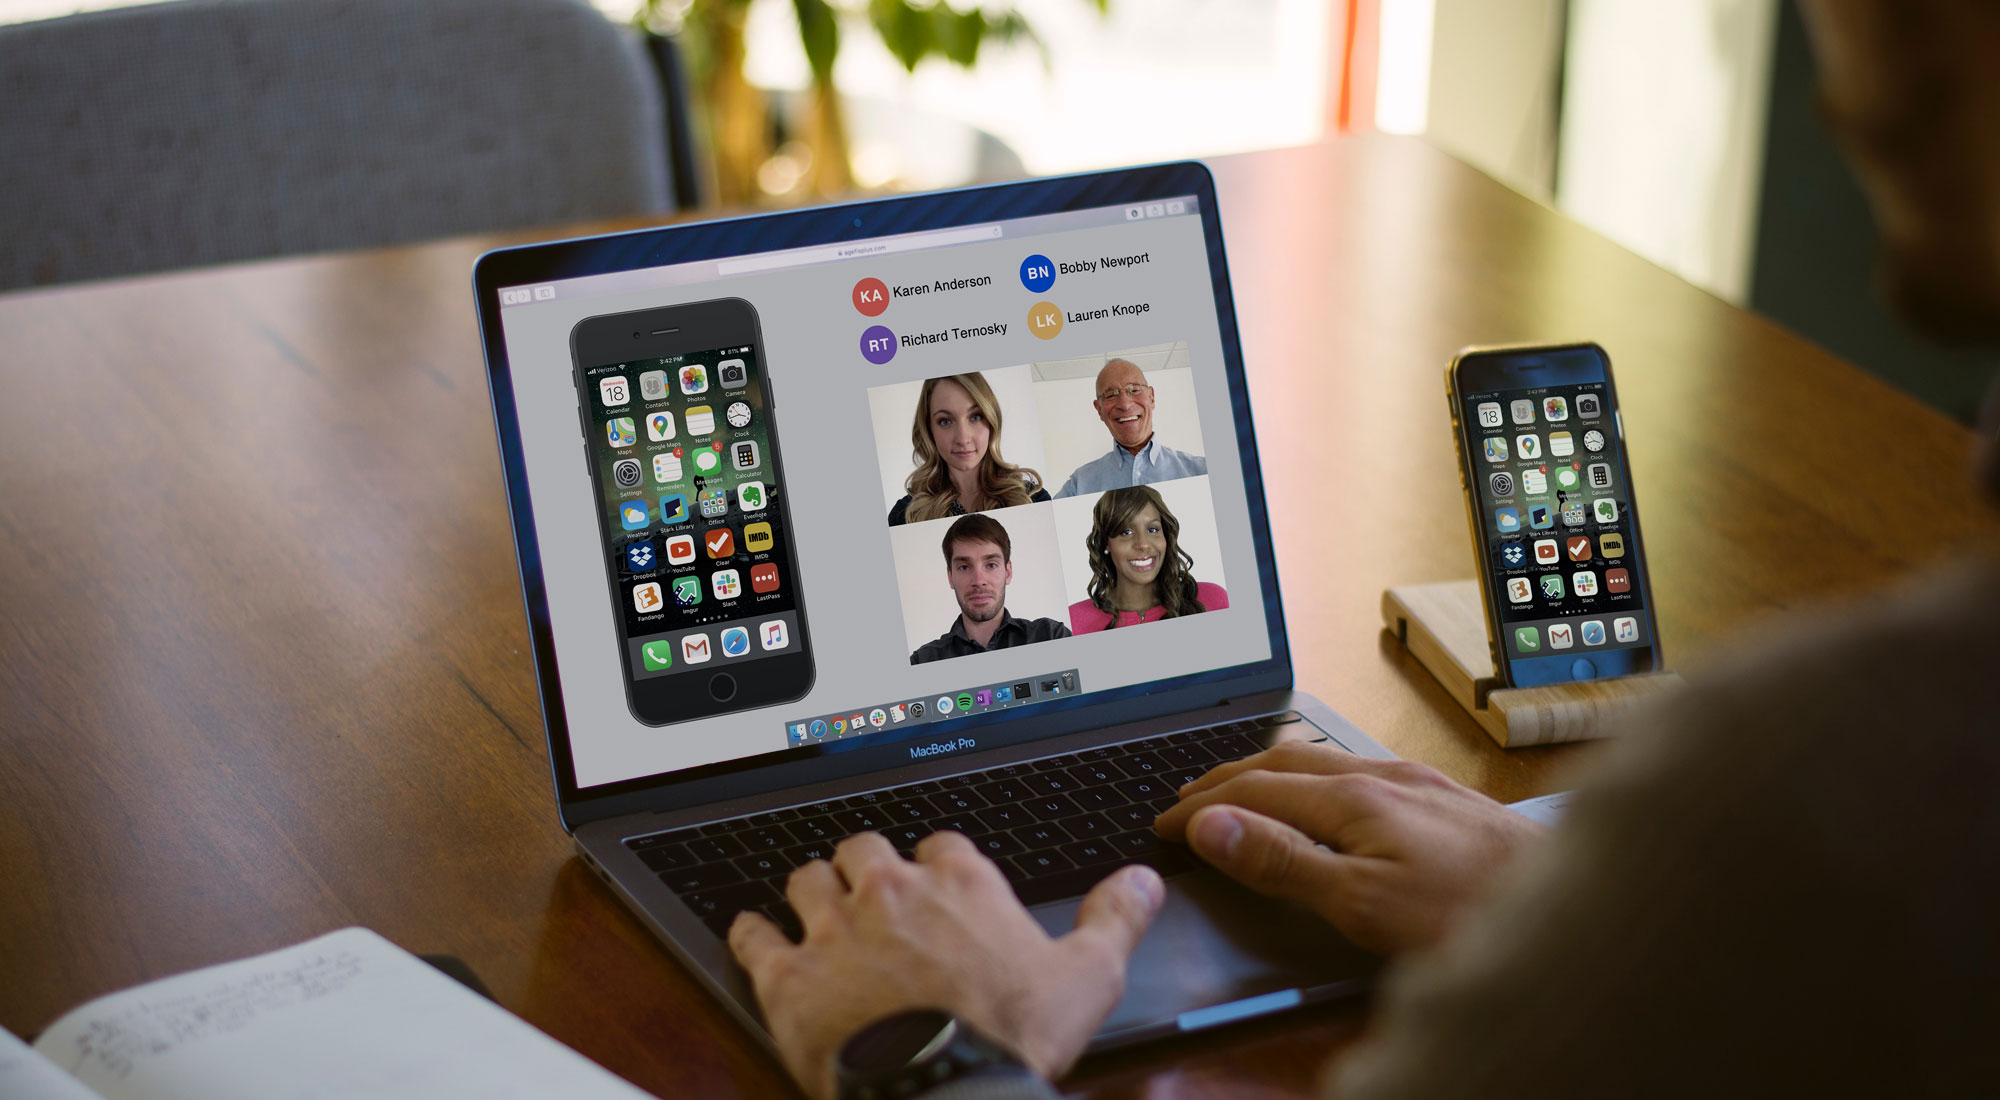 Working from Home? Share Your Mobile Device Screen During Remote Meetings